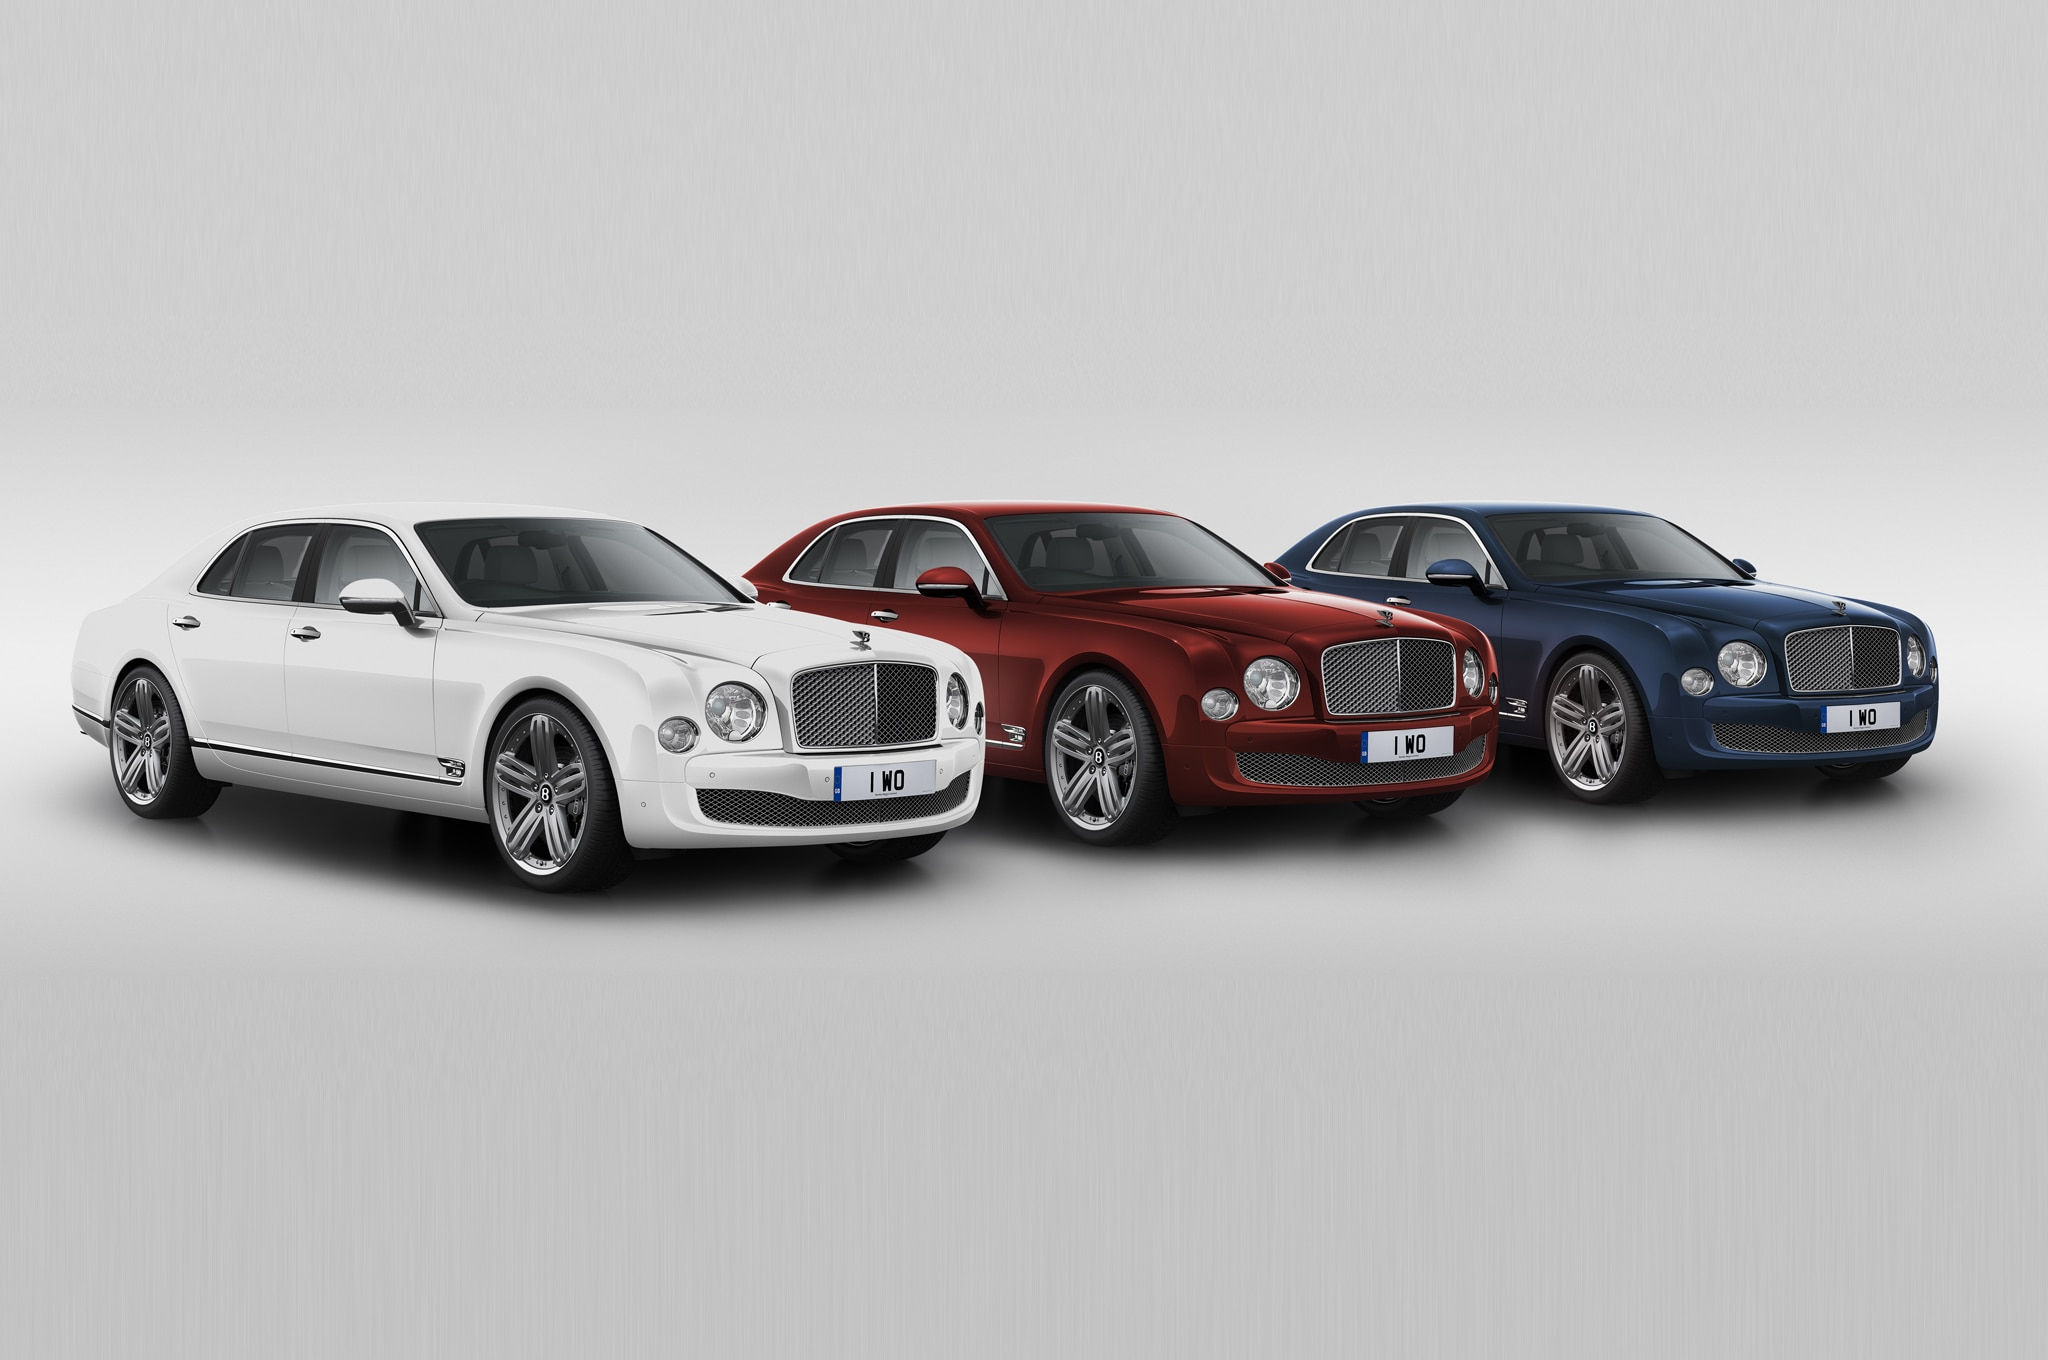 The Bentley Mulsanne S Very Limited: Bentley Mulsanne 95 Special Edition Launched For U.K